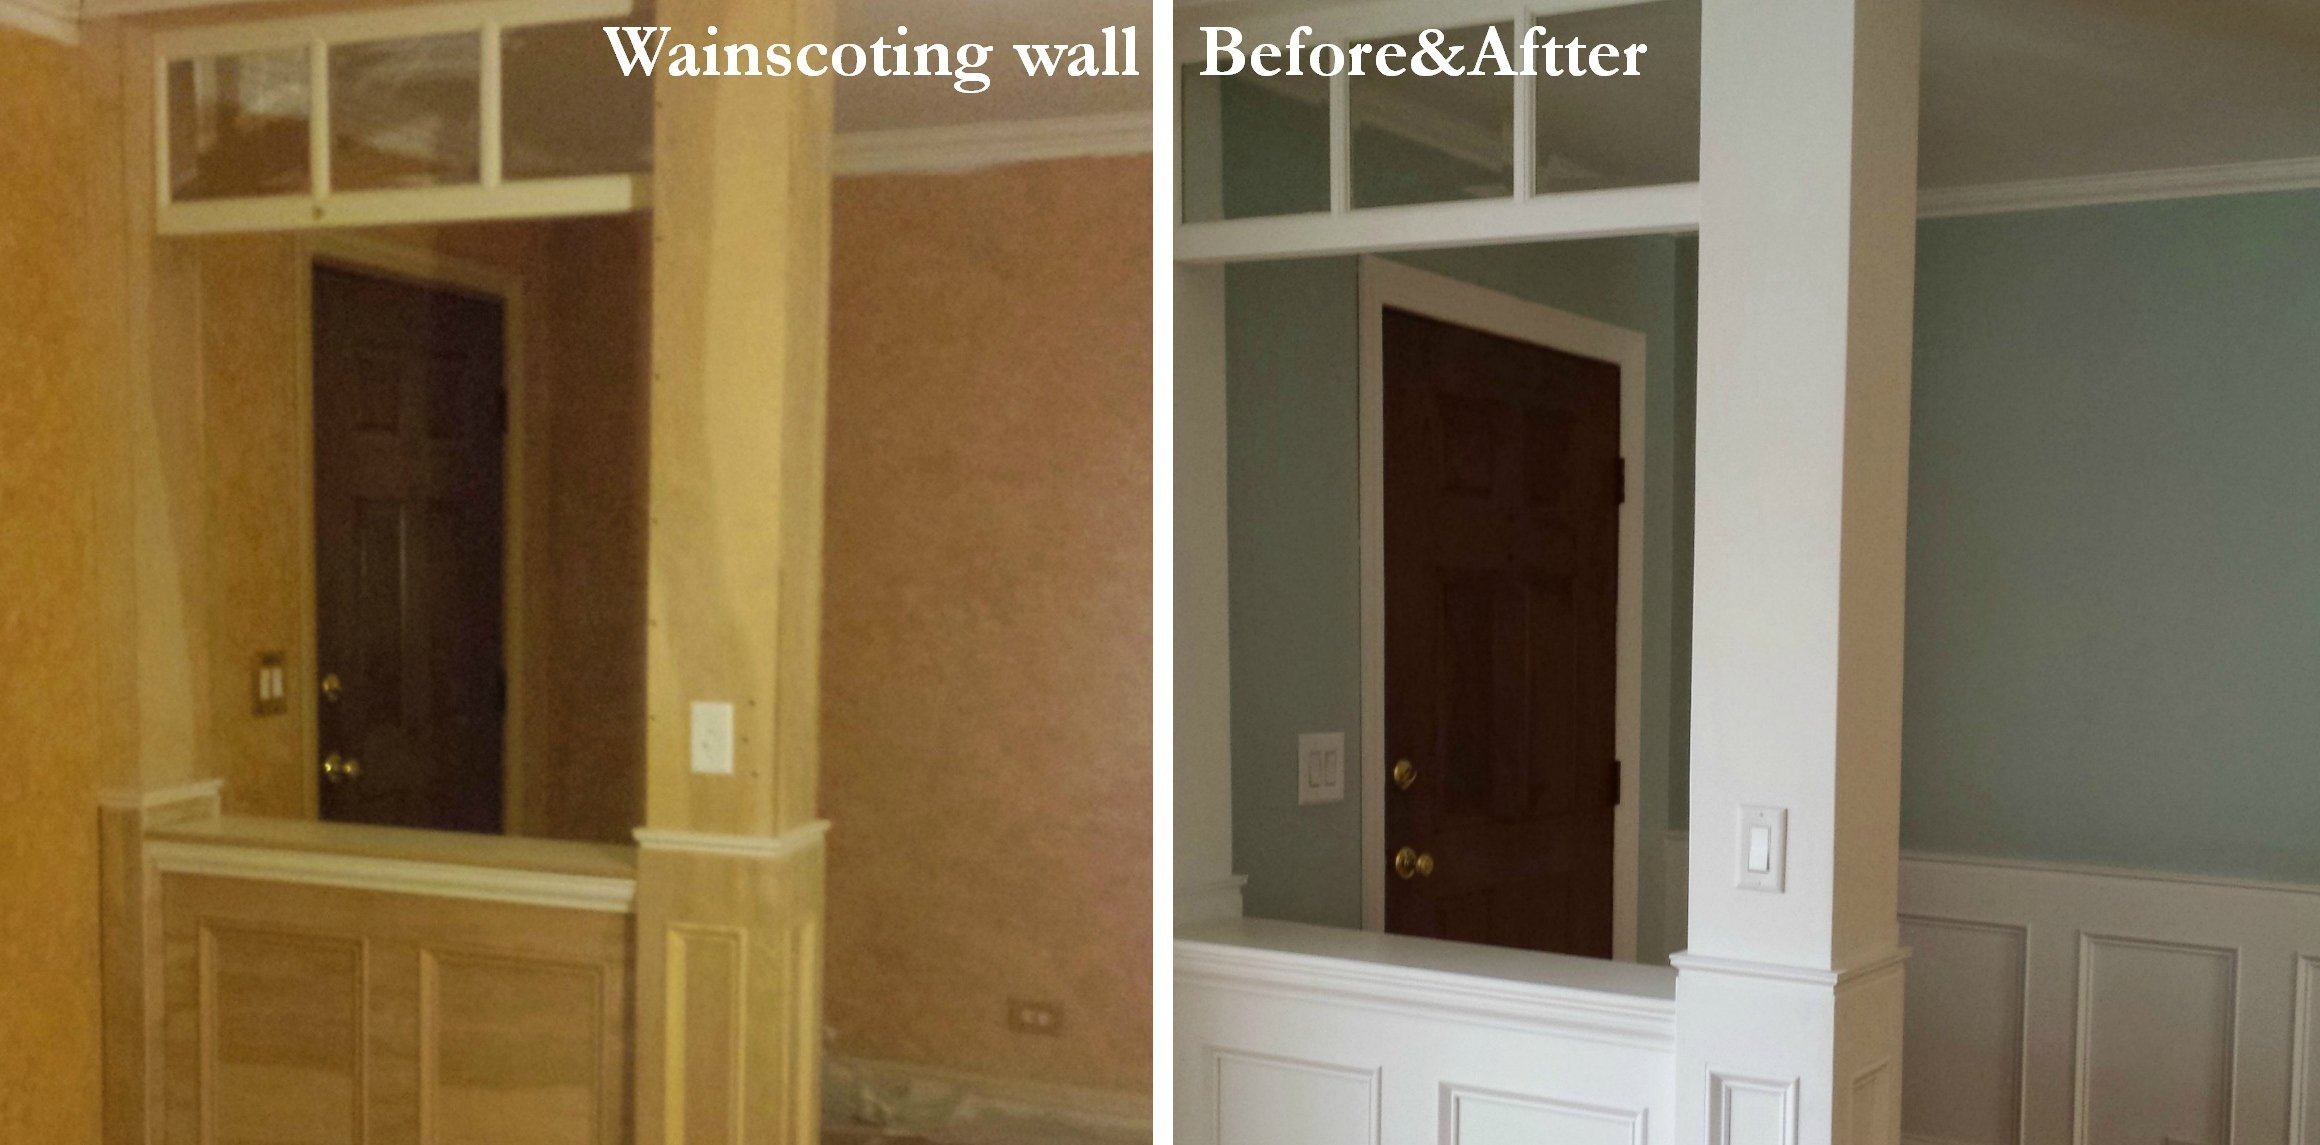 Wainscoting wall Before and After - Housekaboodle : wainscoting door - pezcame.com